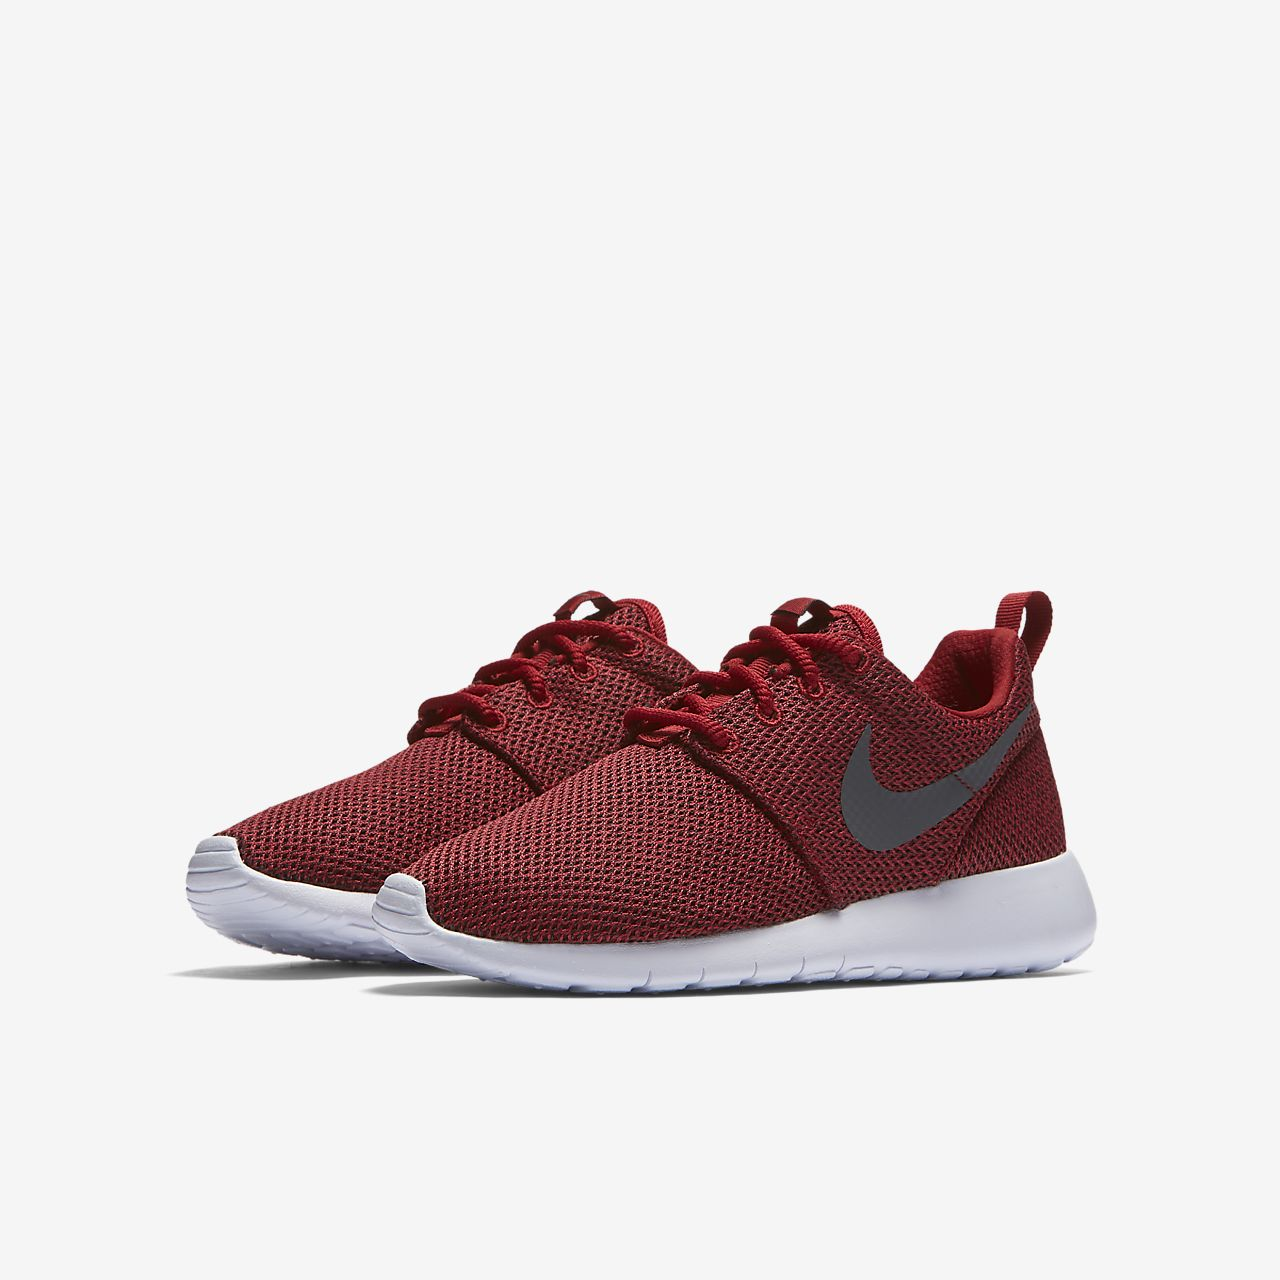 ... Nike Roshe One Big Kids' Shoe